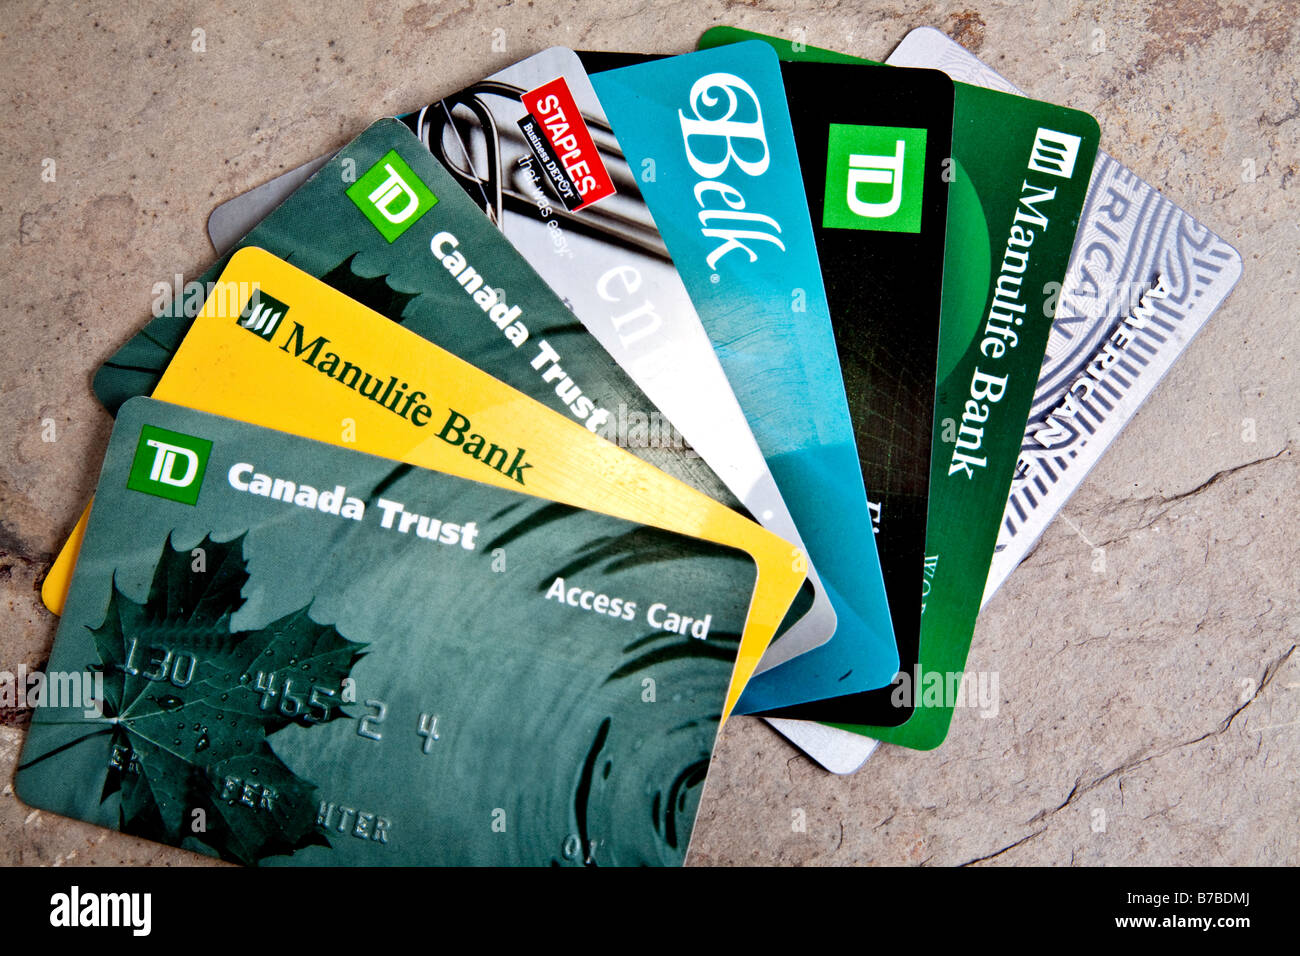 plastic money cards At the moment, there are a lot of risks in the usage of plastic money such as banks being offline, cards not being on switching systems, cards not reading and transactions failing after debiting.